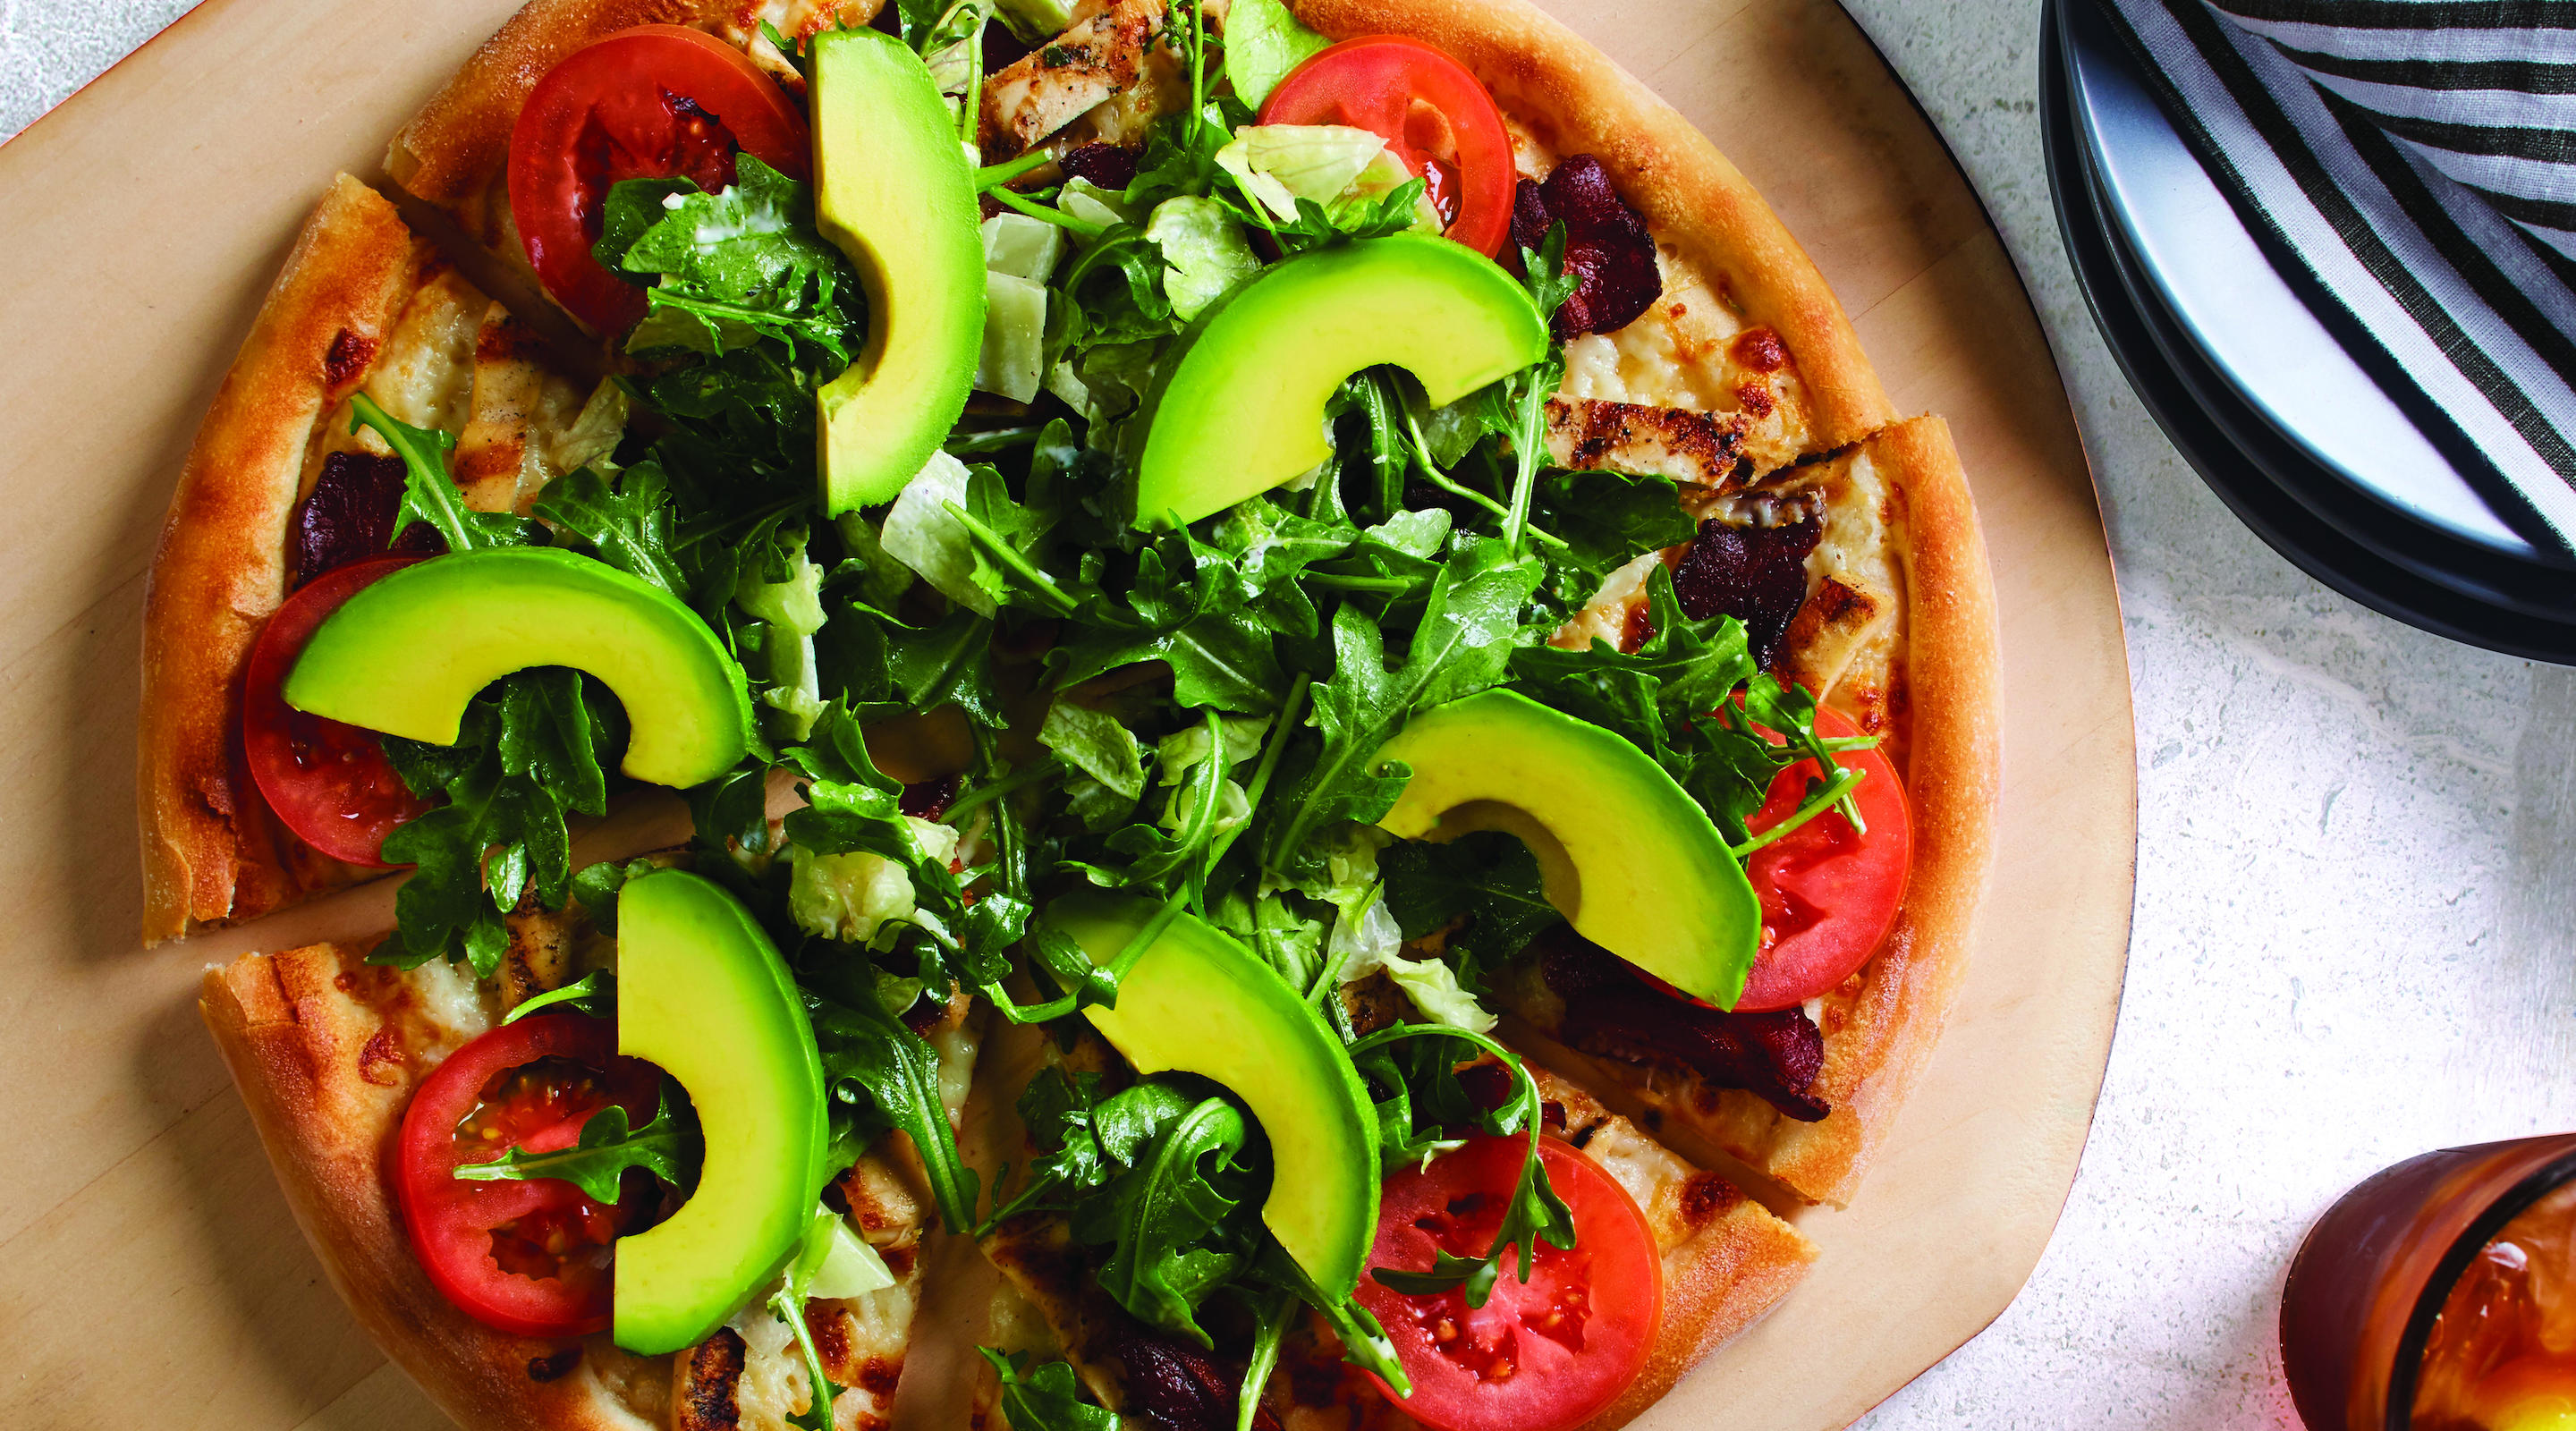 California Club pizza, with Nueske's applewood smoked bacon, roasted chicken and Mozzarella,  topped with avocado, wild arugula, fresh torn basil and romaine lettuce.